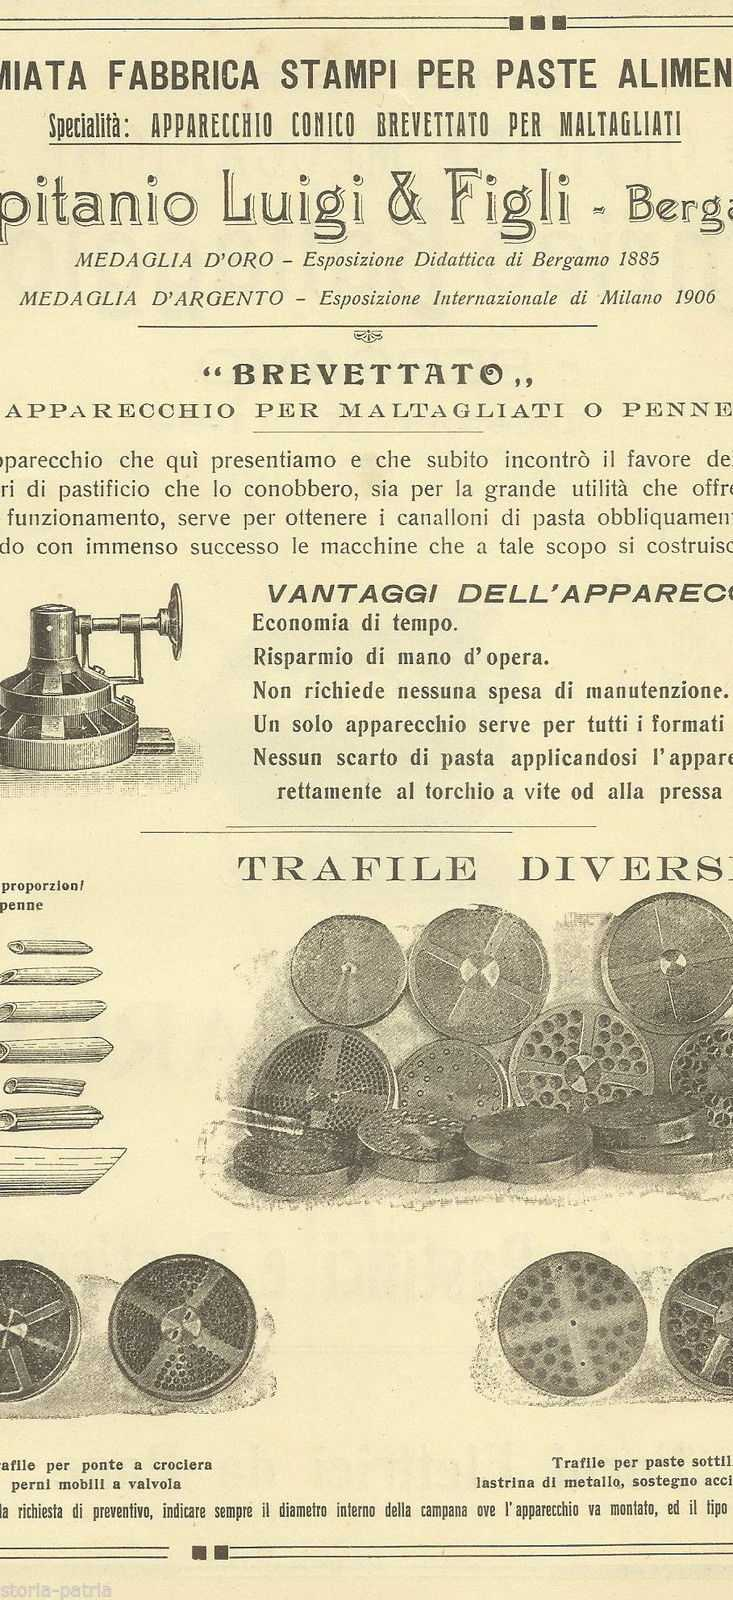 Bergamo, Pastificio, Paste Alimentari, Trafile, Capitanio, Officine Battaggion, Pane anteprima